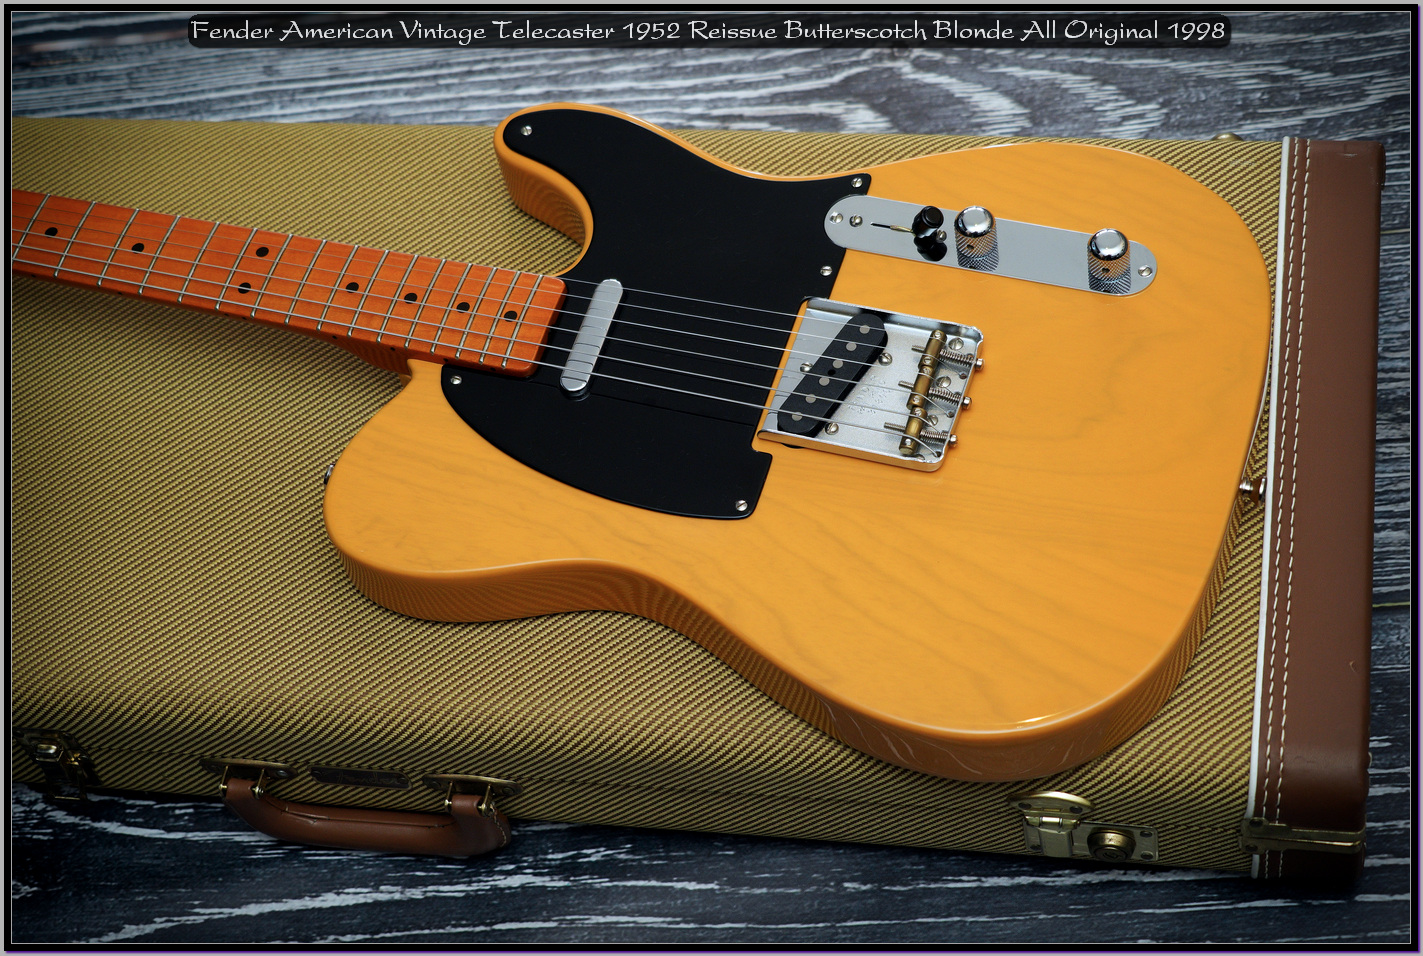 Fender American Vintage Telecaster 1952 Reissue Butterscotch Blonde All Original 1998 03_x1440.jpg